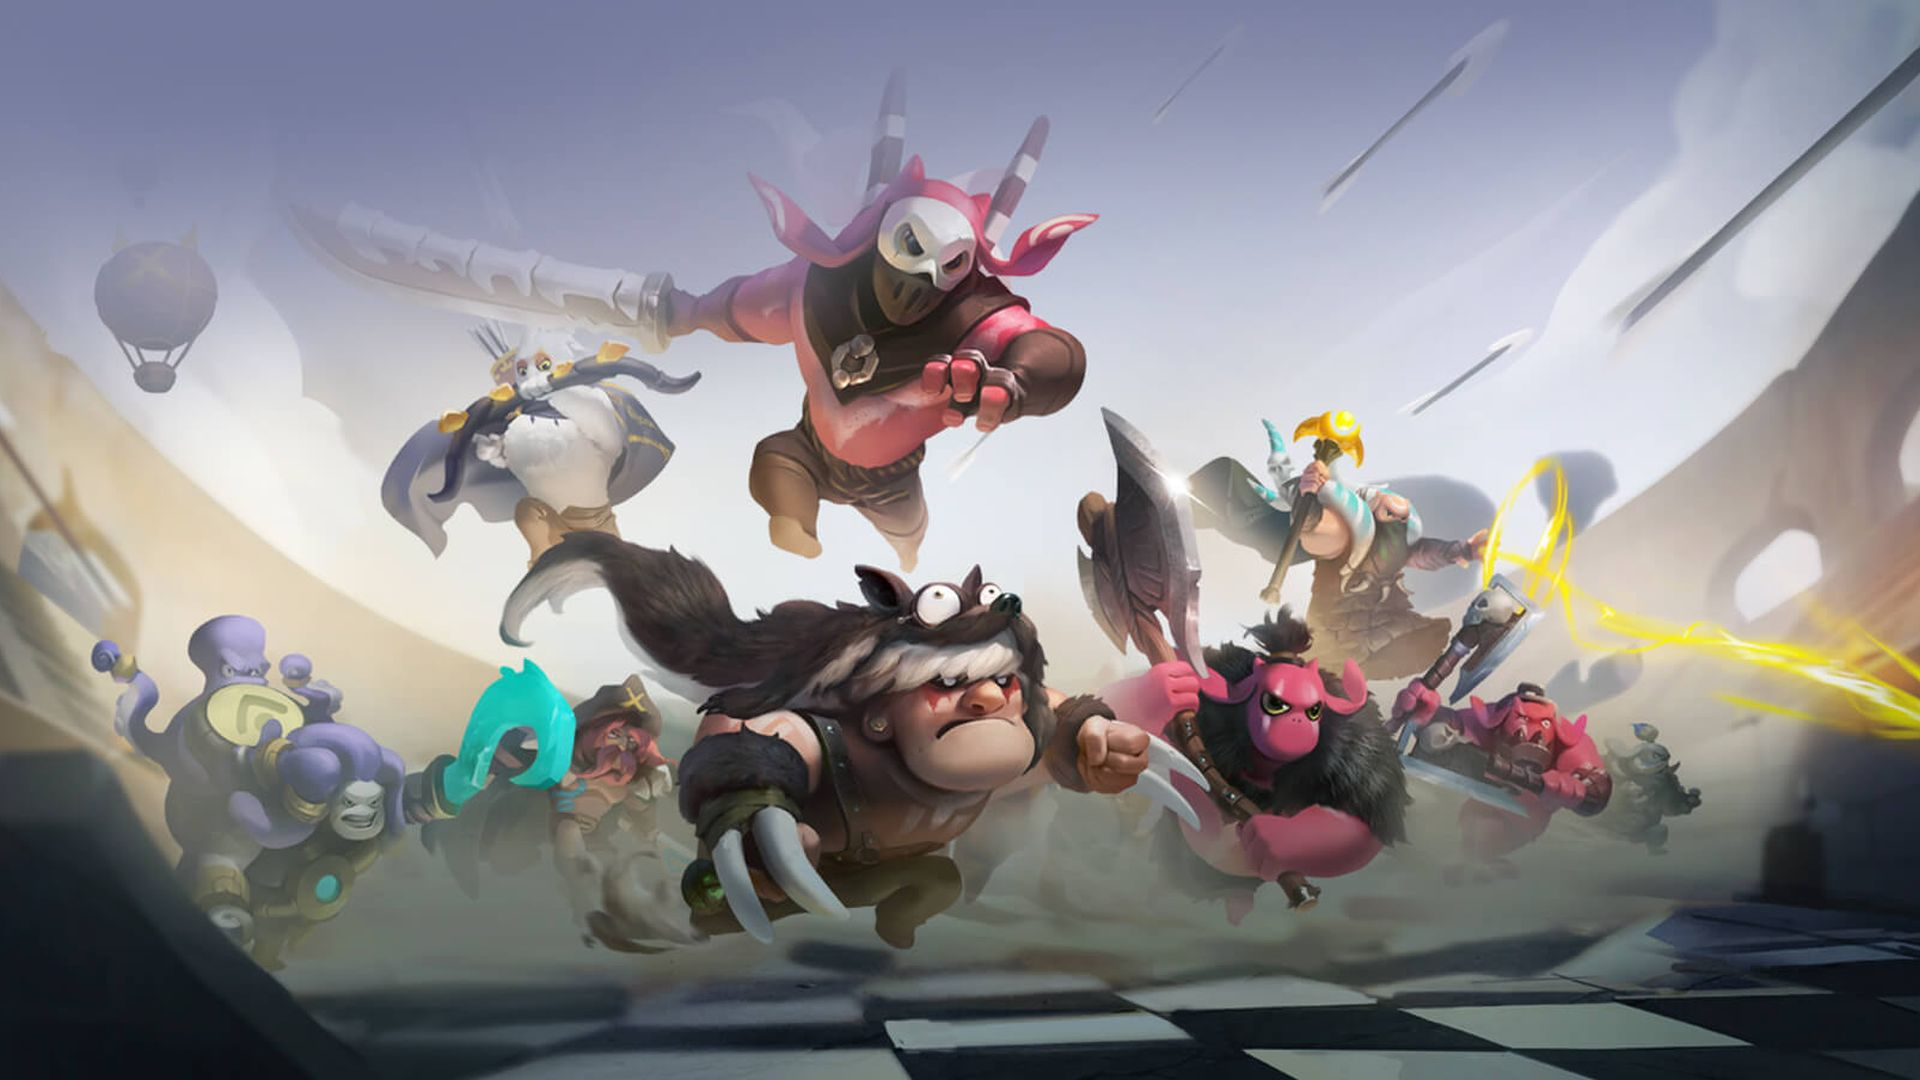 Dota Auto Chess Splits From Dota 2 For Mobile Release - Dota Auto Chess Mobile , HD Wallpaper & Backgrounds